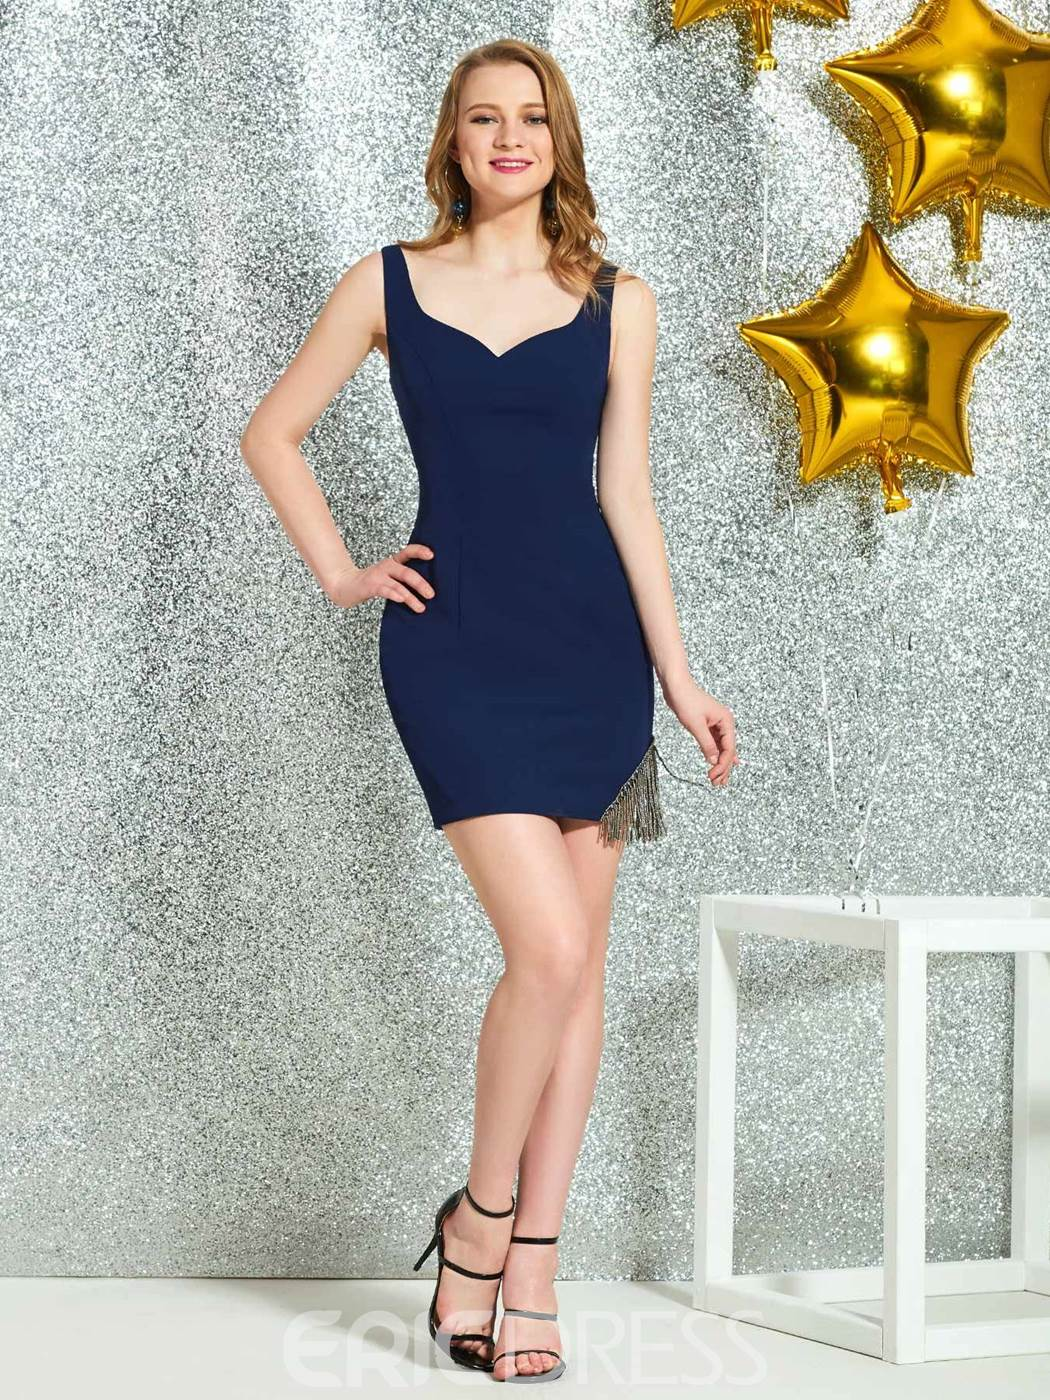 Ericdress Straps Sleeveless Sheath Cocktail Dress 2019